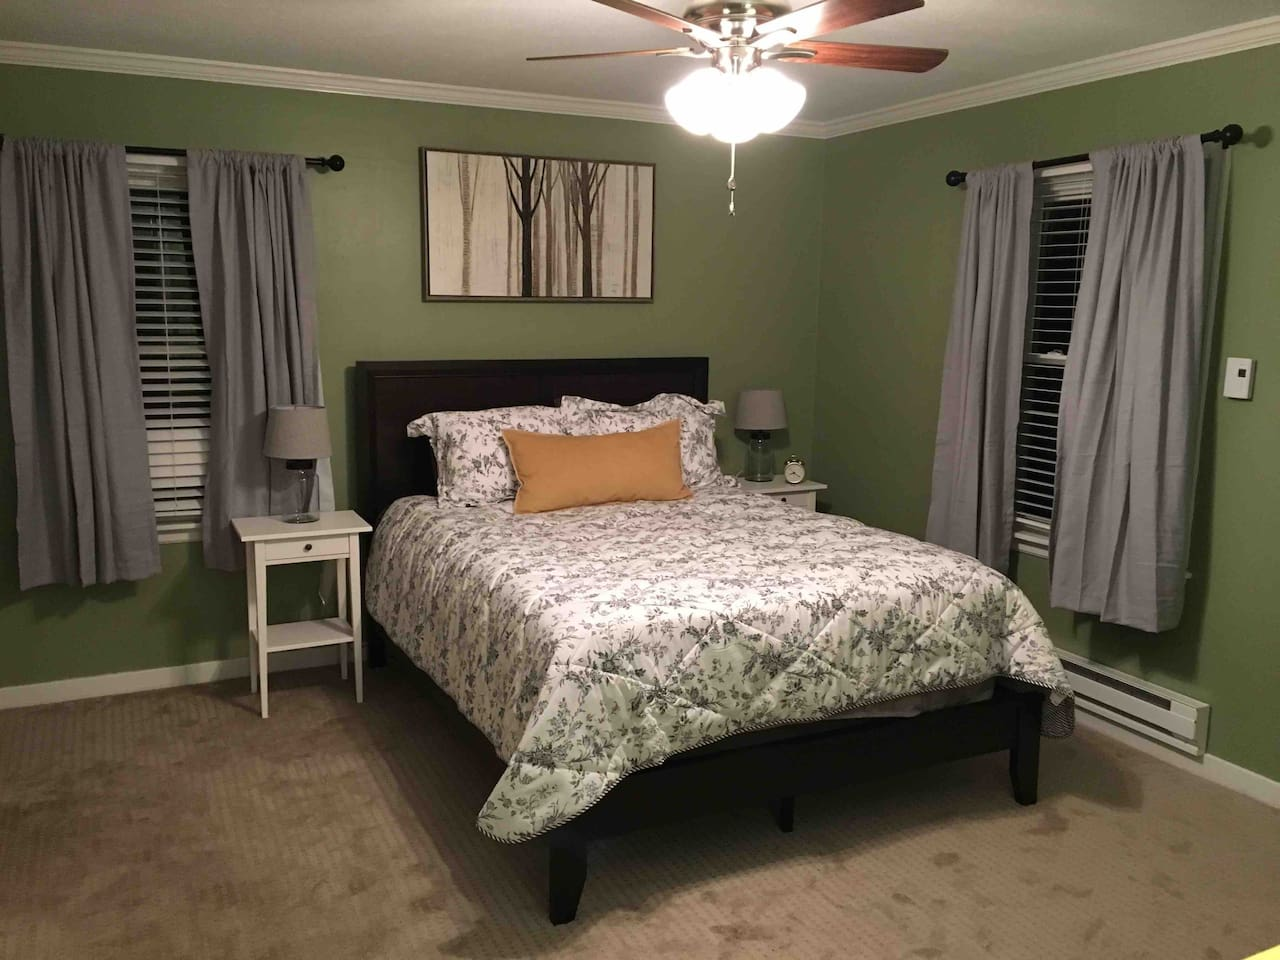 Queen bed in a spacious bedroom.